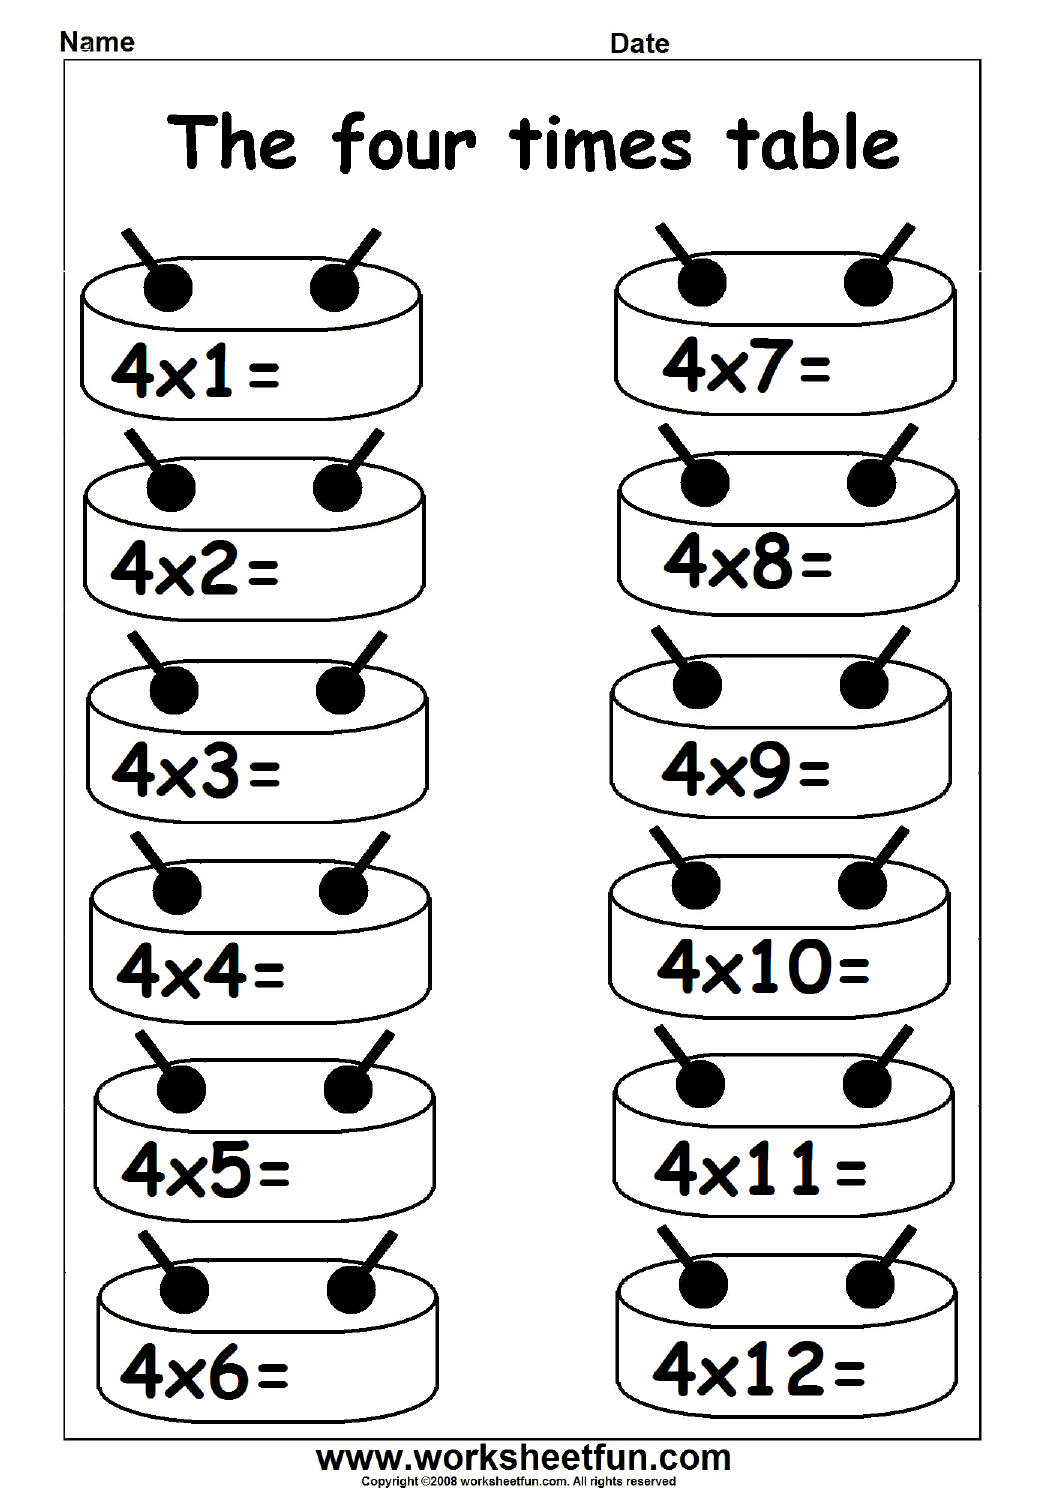 Multiplication Times Tables Worksheets 2 3 4 6 7 8 9 12 13 14 And 16 Times Tables